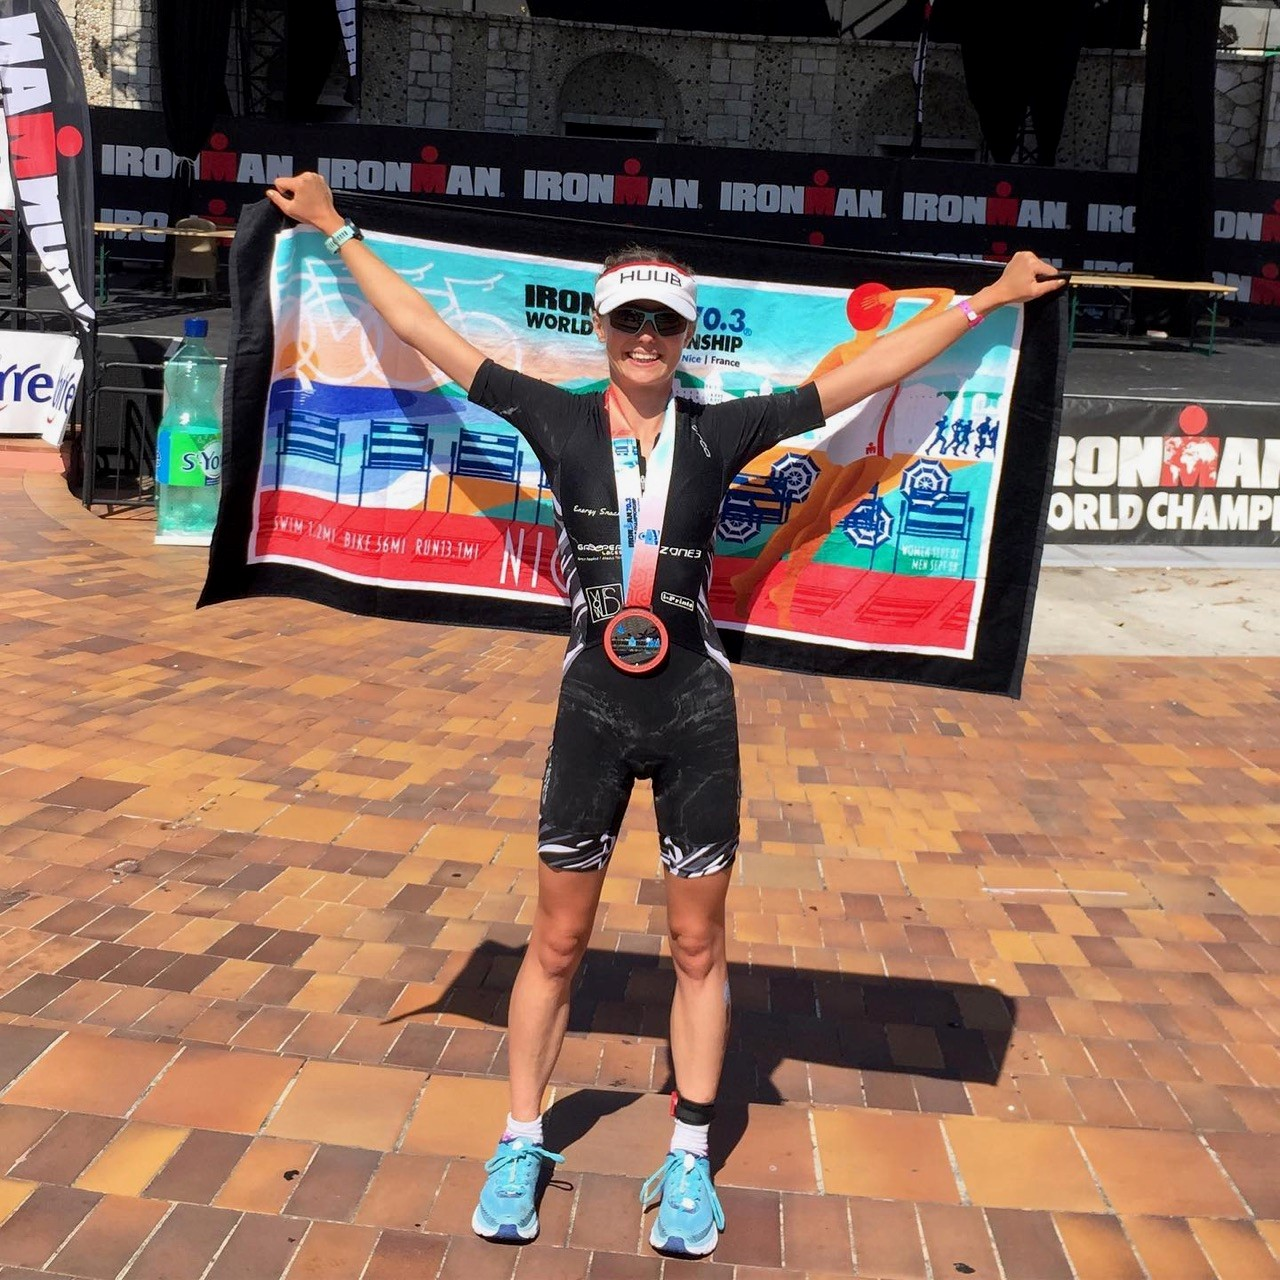 Hereford triathlete completes first world championship with support from BBR Optometry